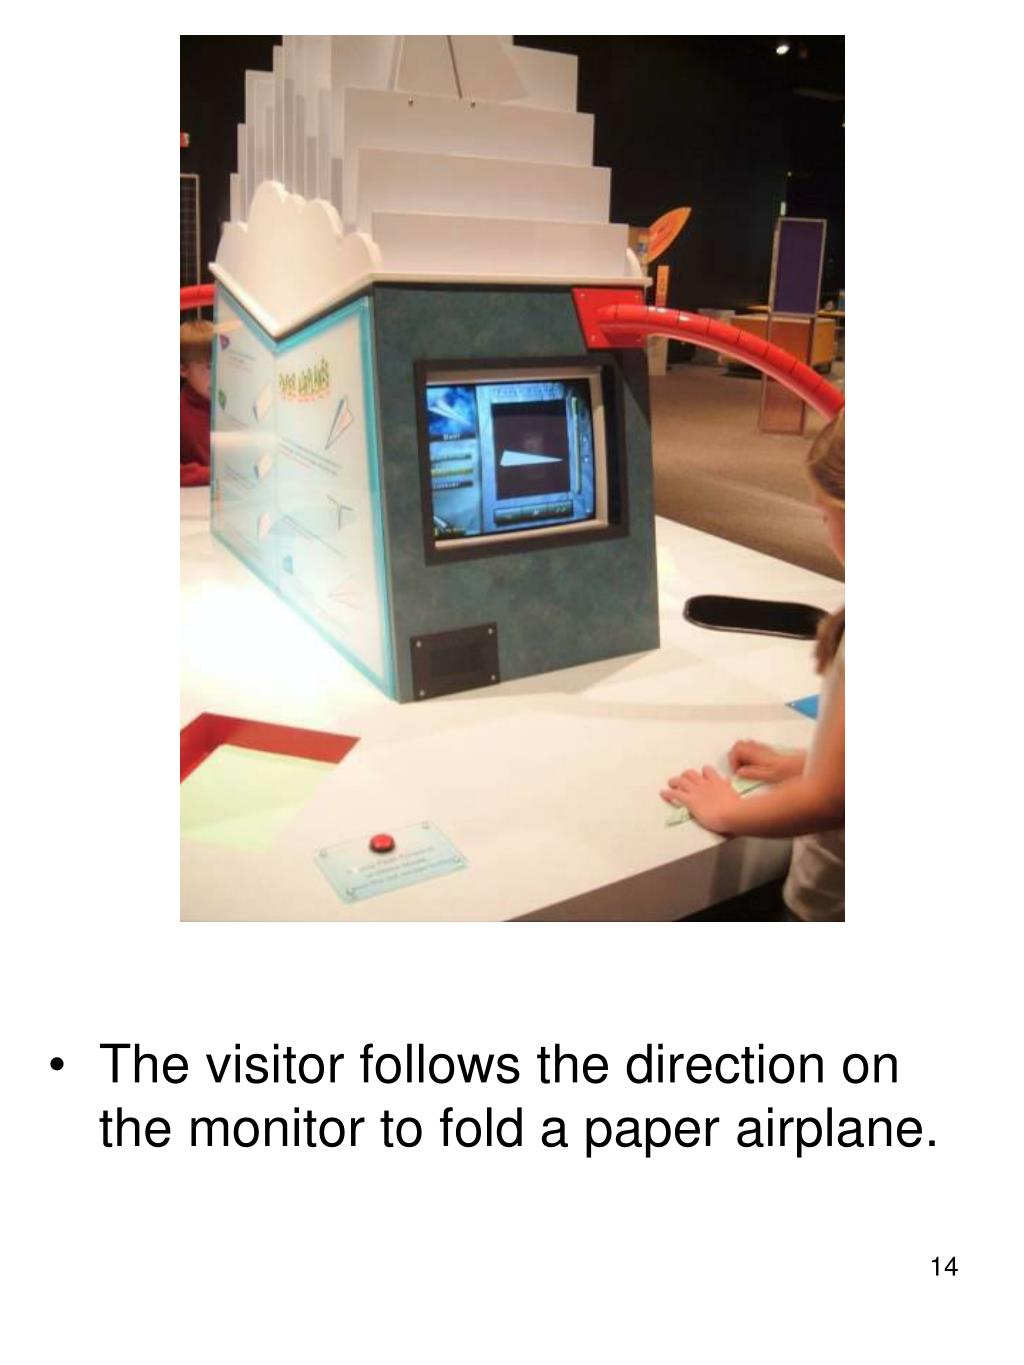 The visitor follows the direction on the monitor to fold a paper airplane.